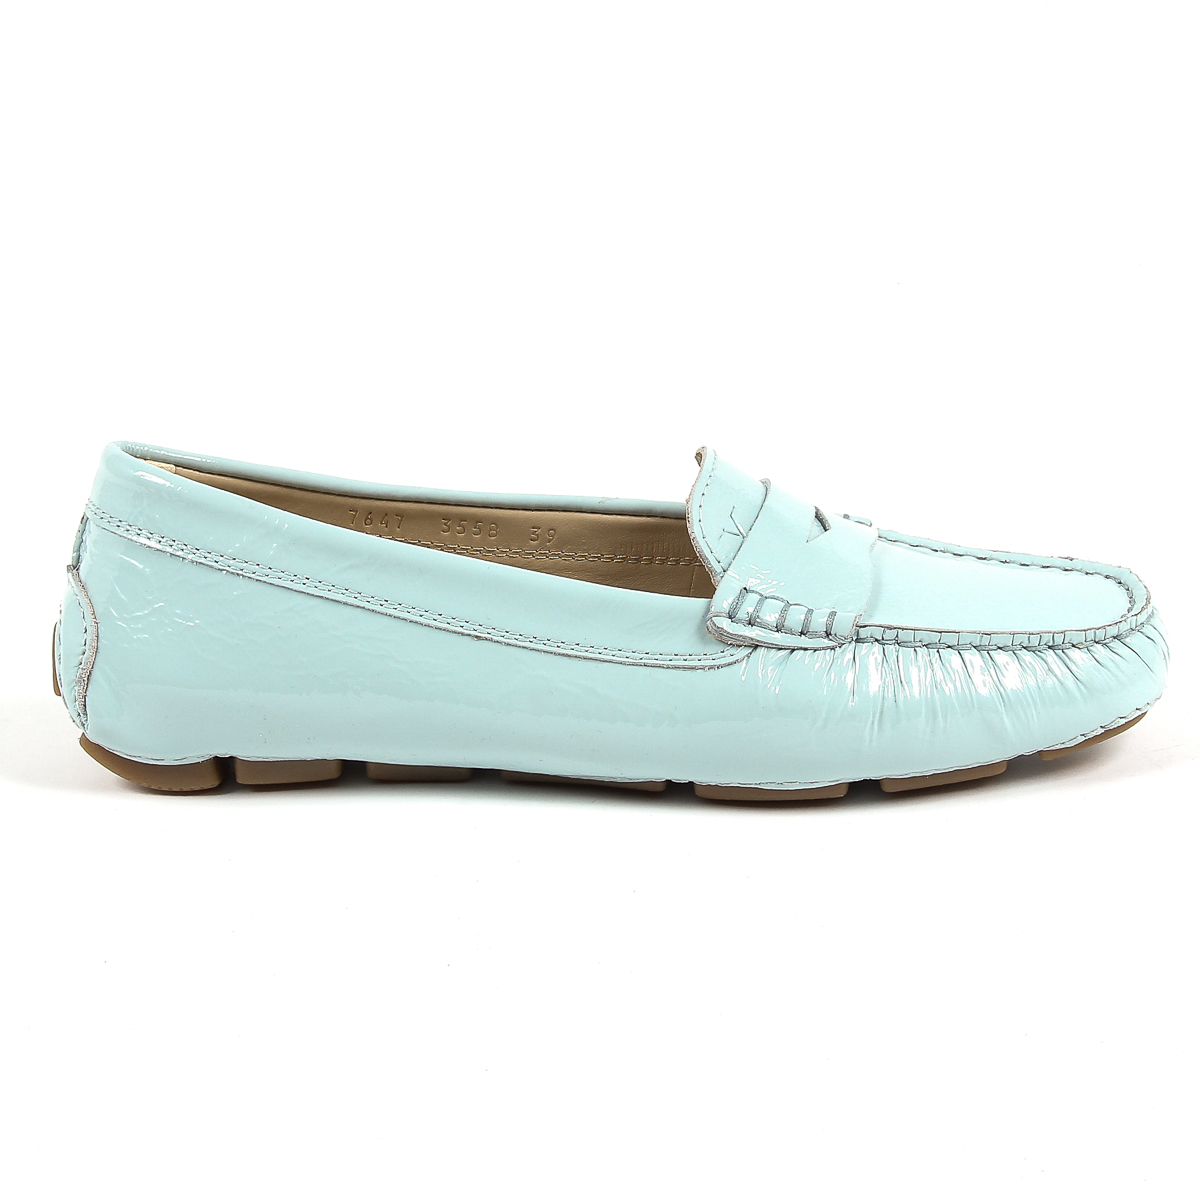 Primary image for V 1969 Italia Womens Loafer Light Blue AMALFI